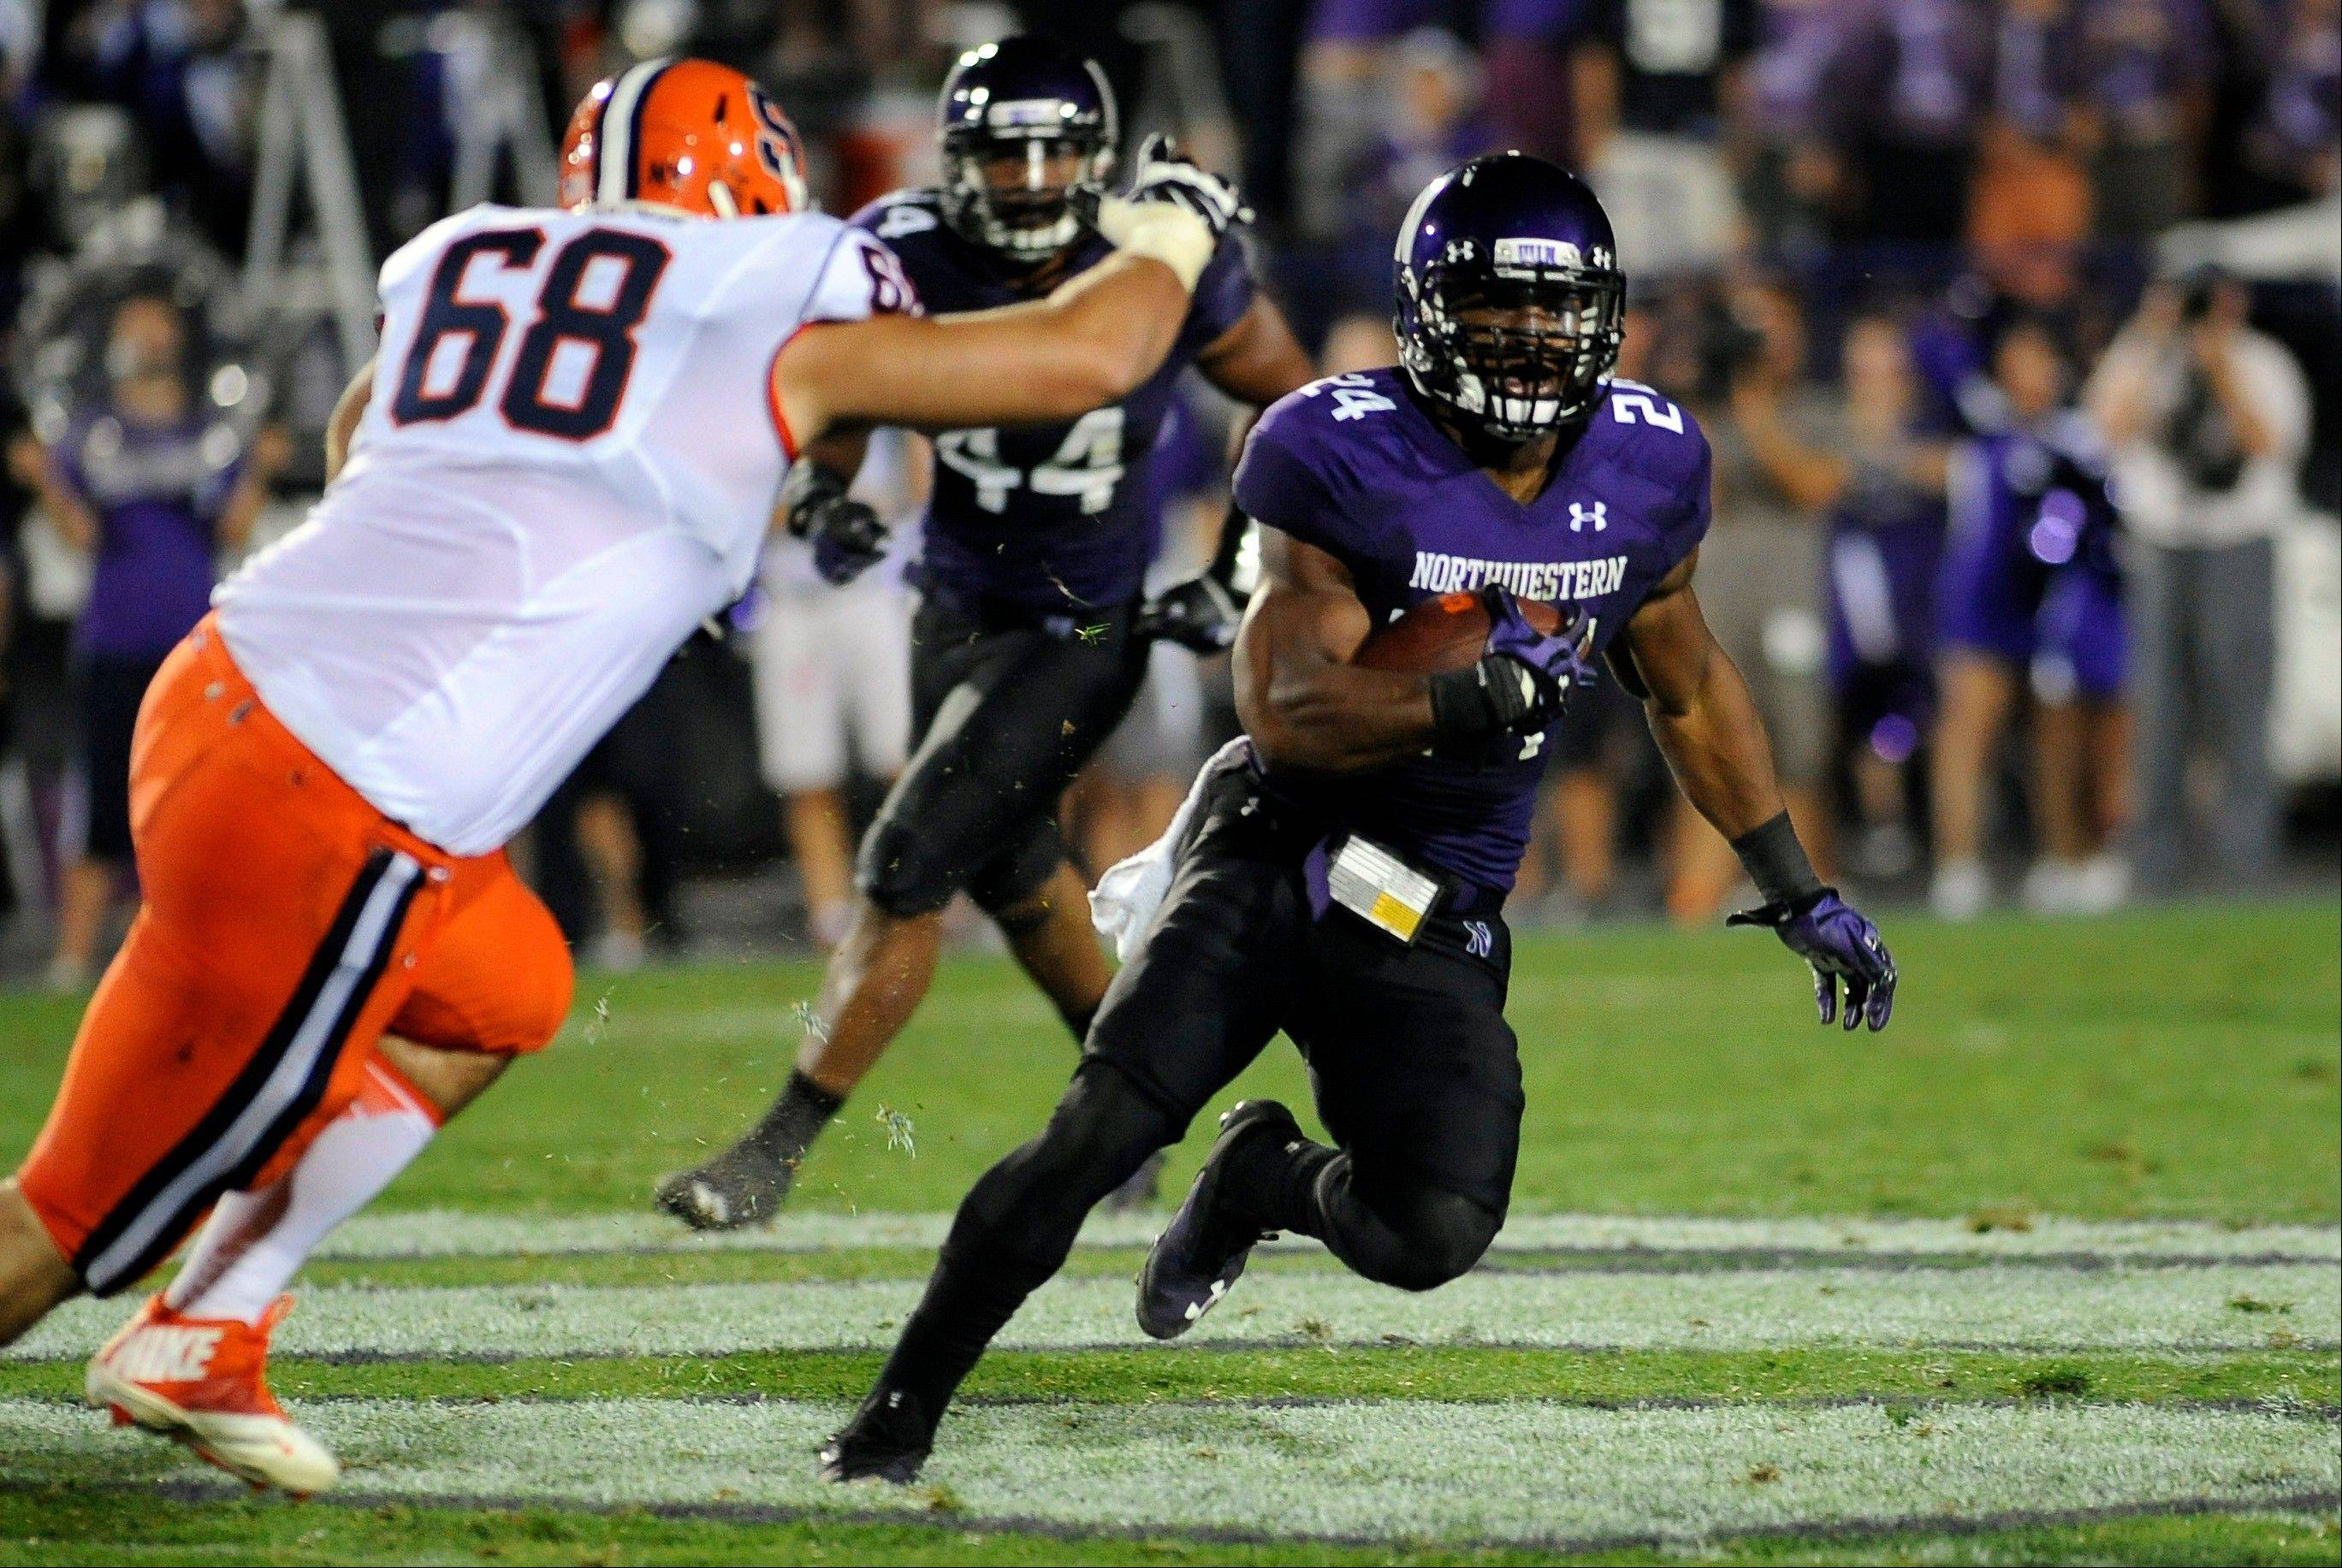 Northwestern's Ibraheim Campbell runs with an interception against Syracuse at Ryan Field. Northwestern announced Tuesday it will play host to Northern Illinois next season.